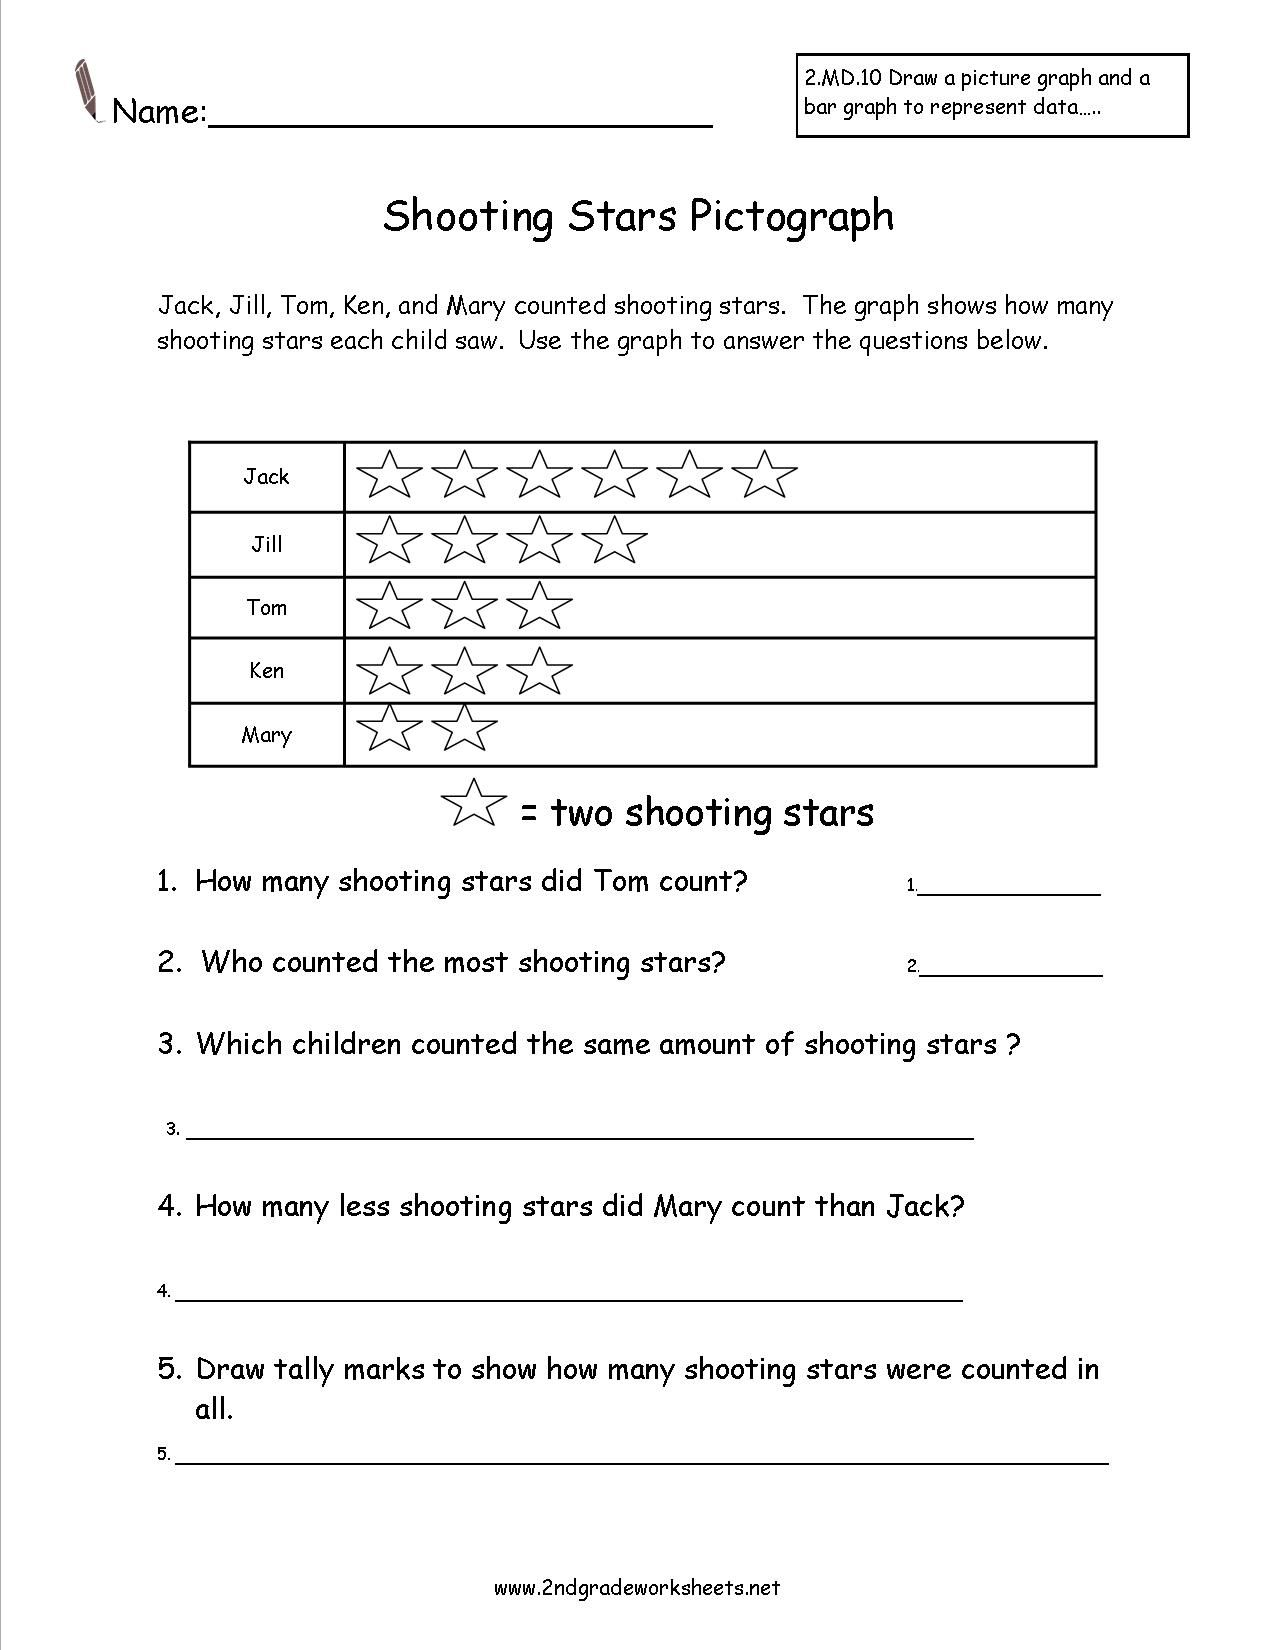 small resolution of shooting stars pictograph worksheet   Third grade worksheets